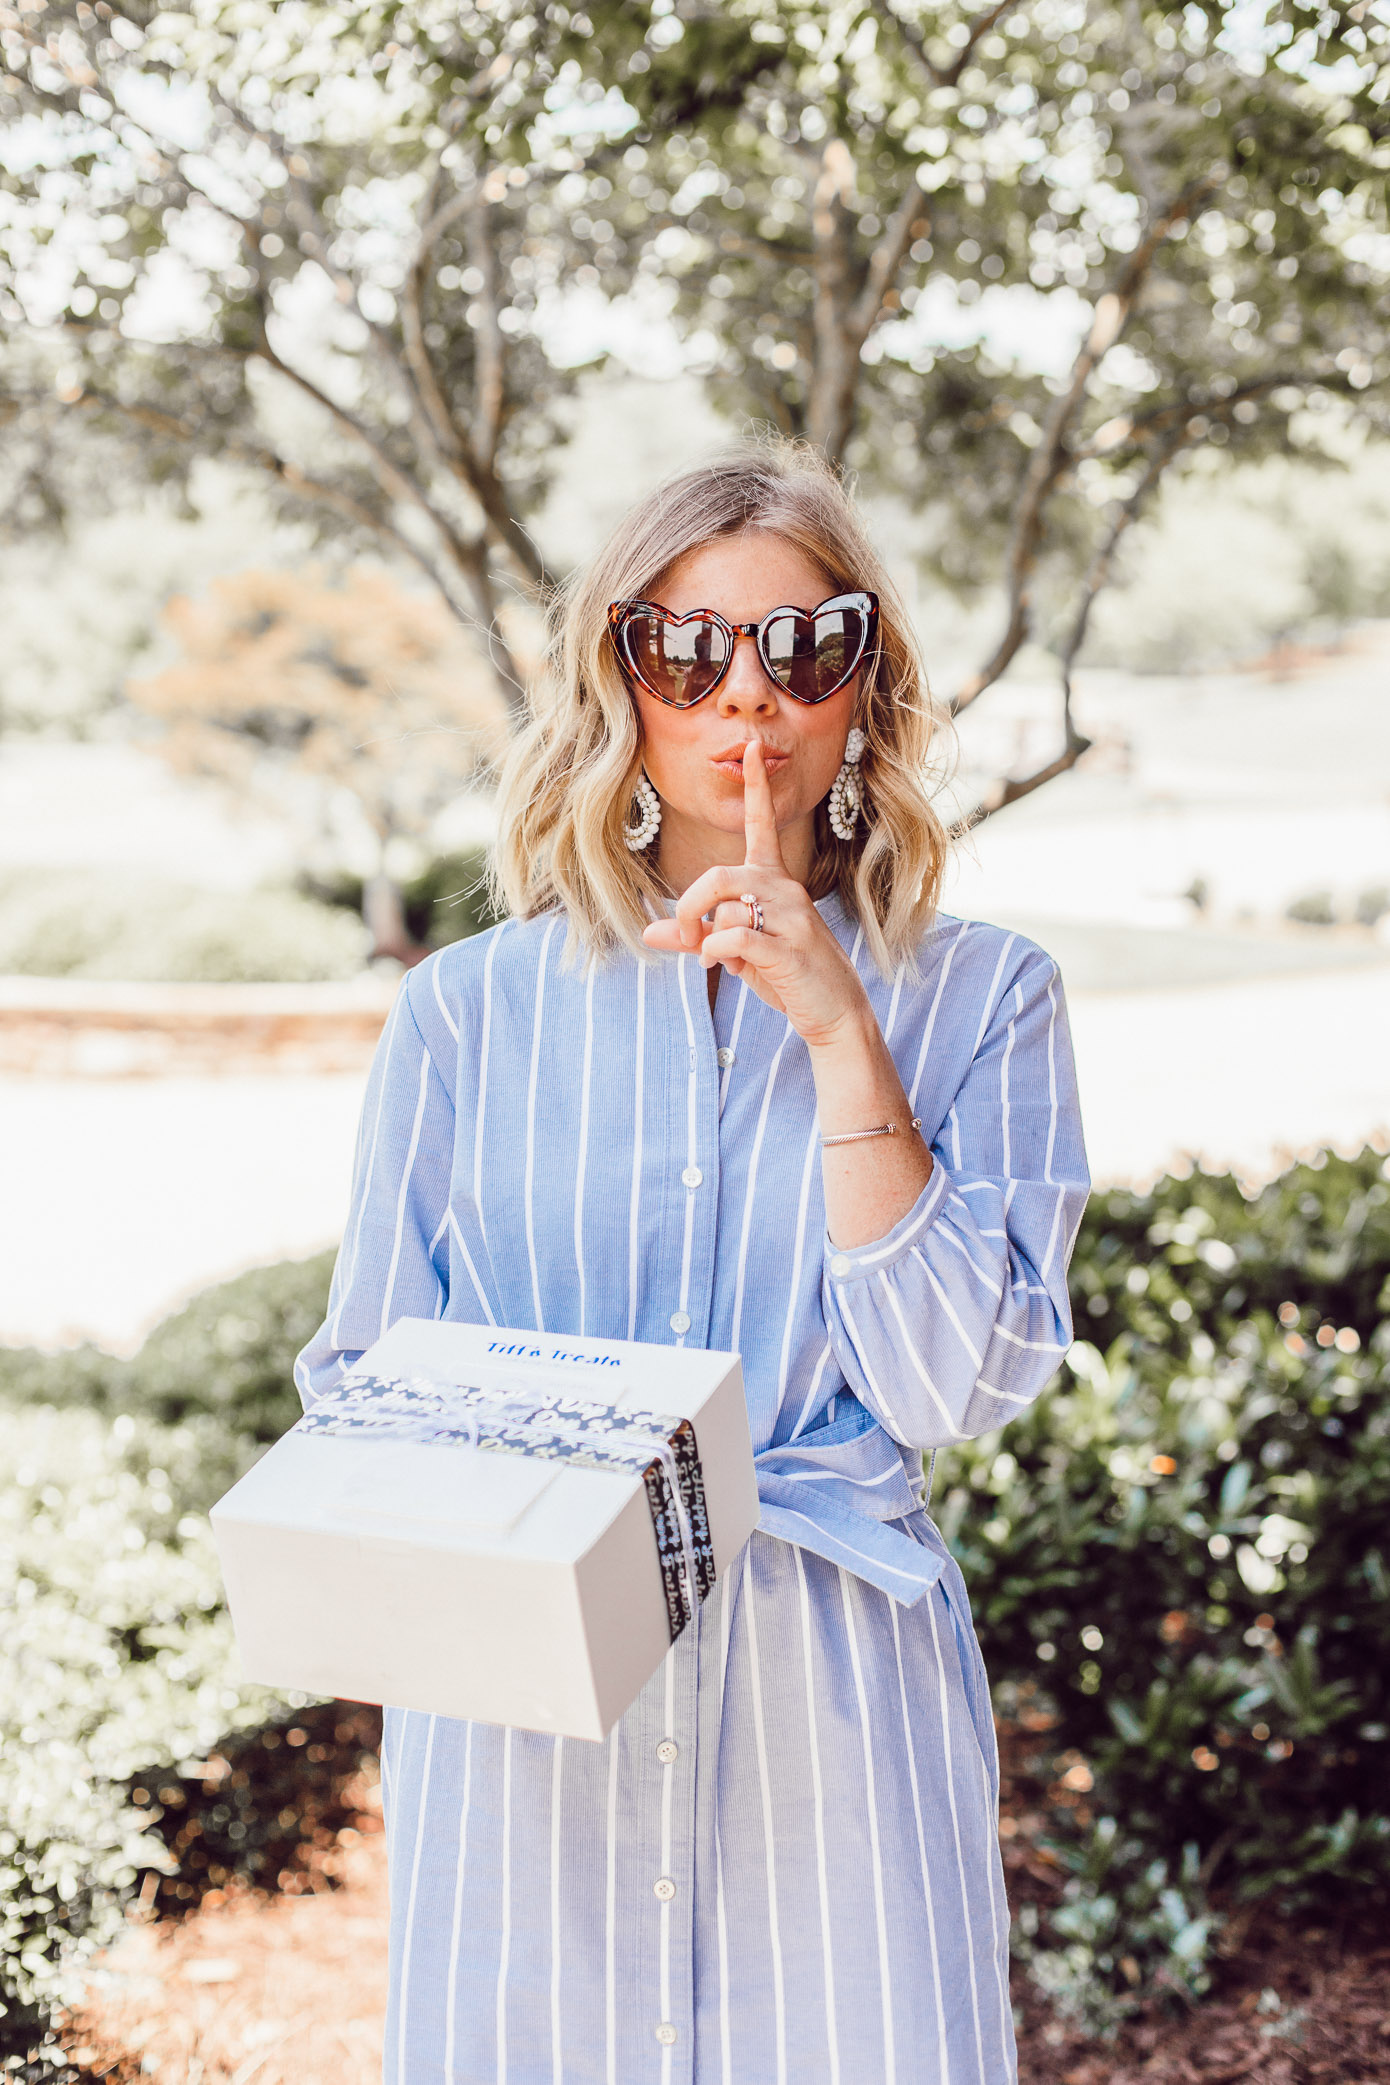 73 Questions with Laura Leigh | Louella Reese take on Vogue 73 Questions